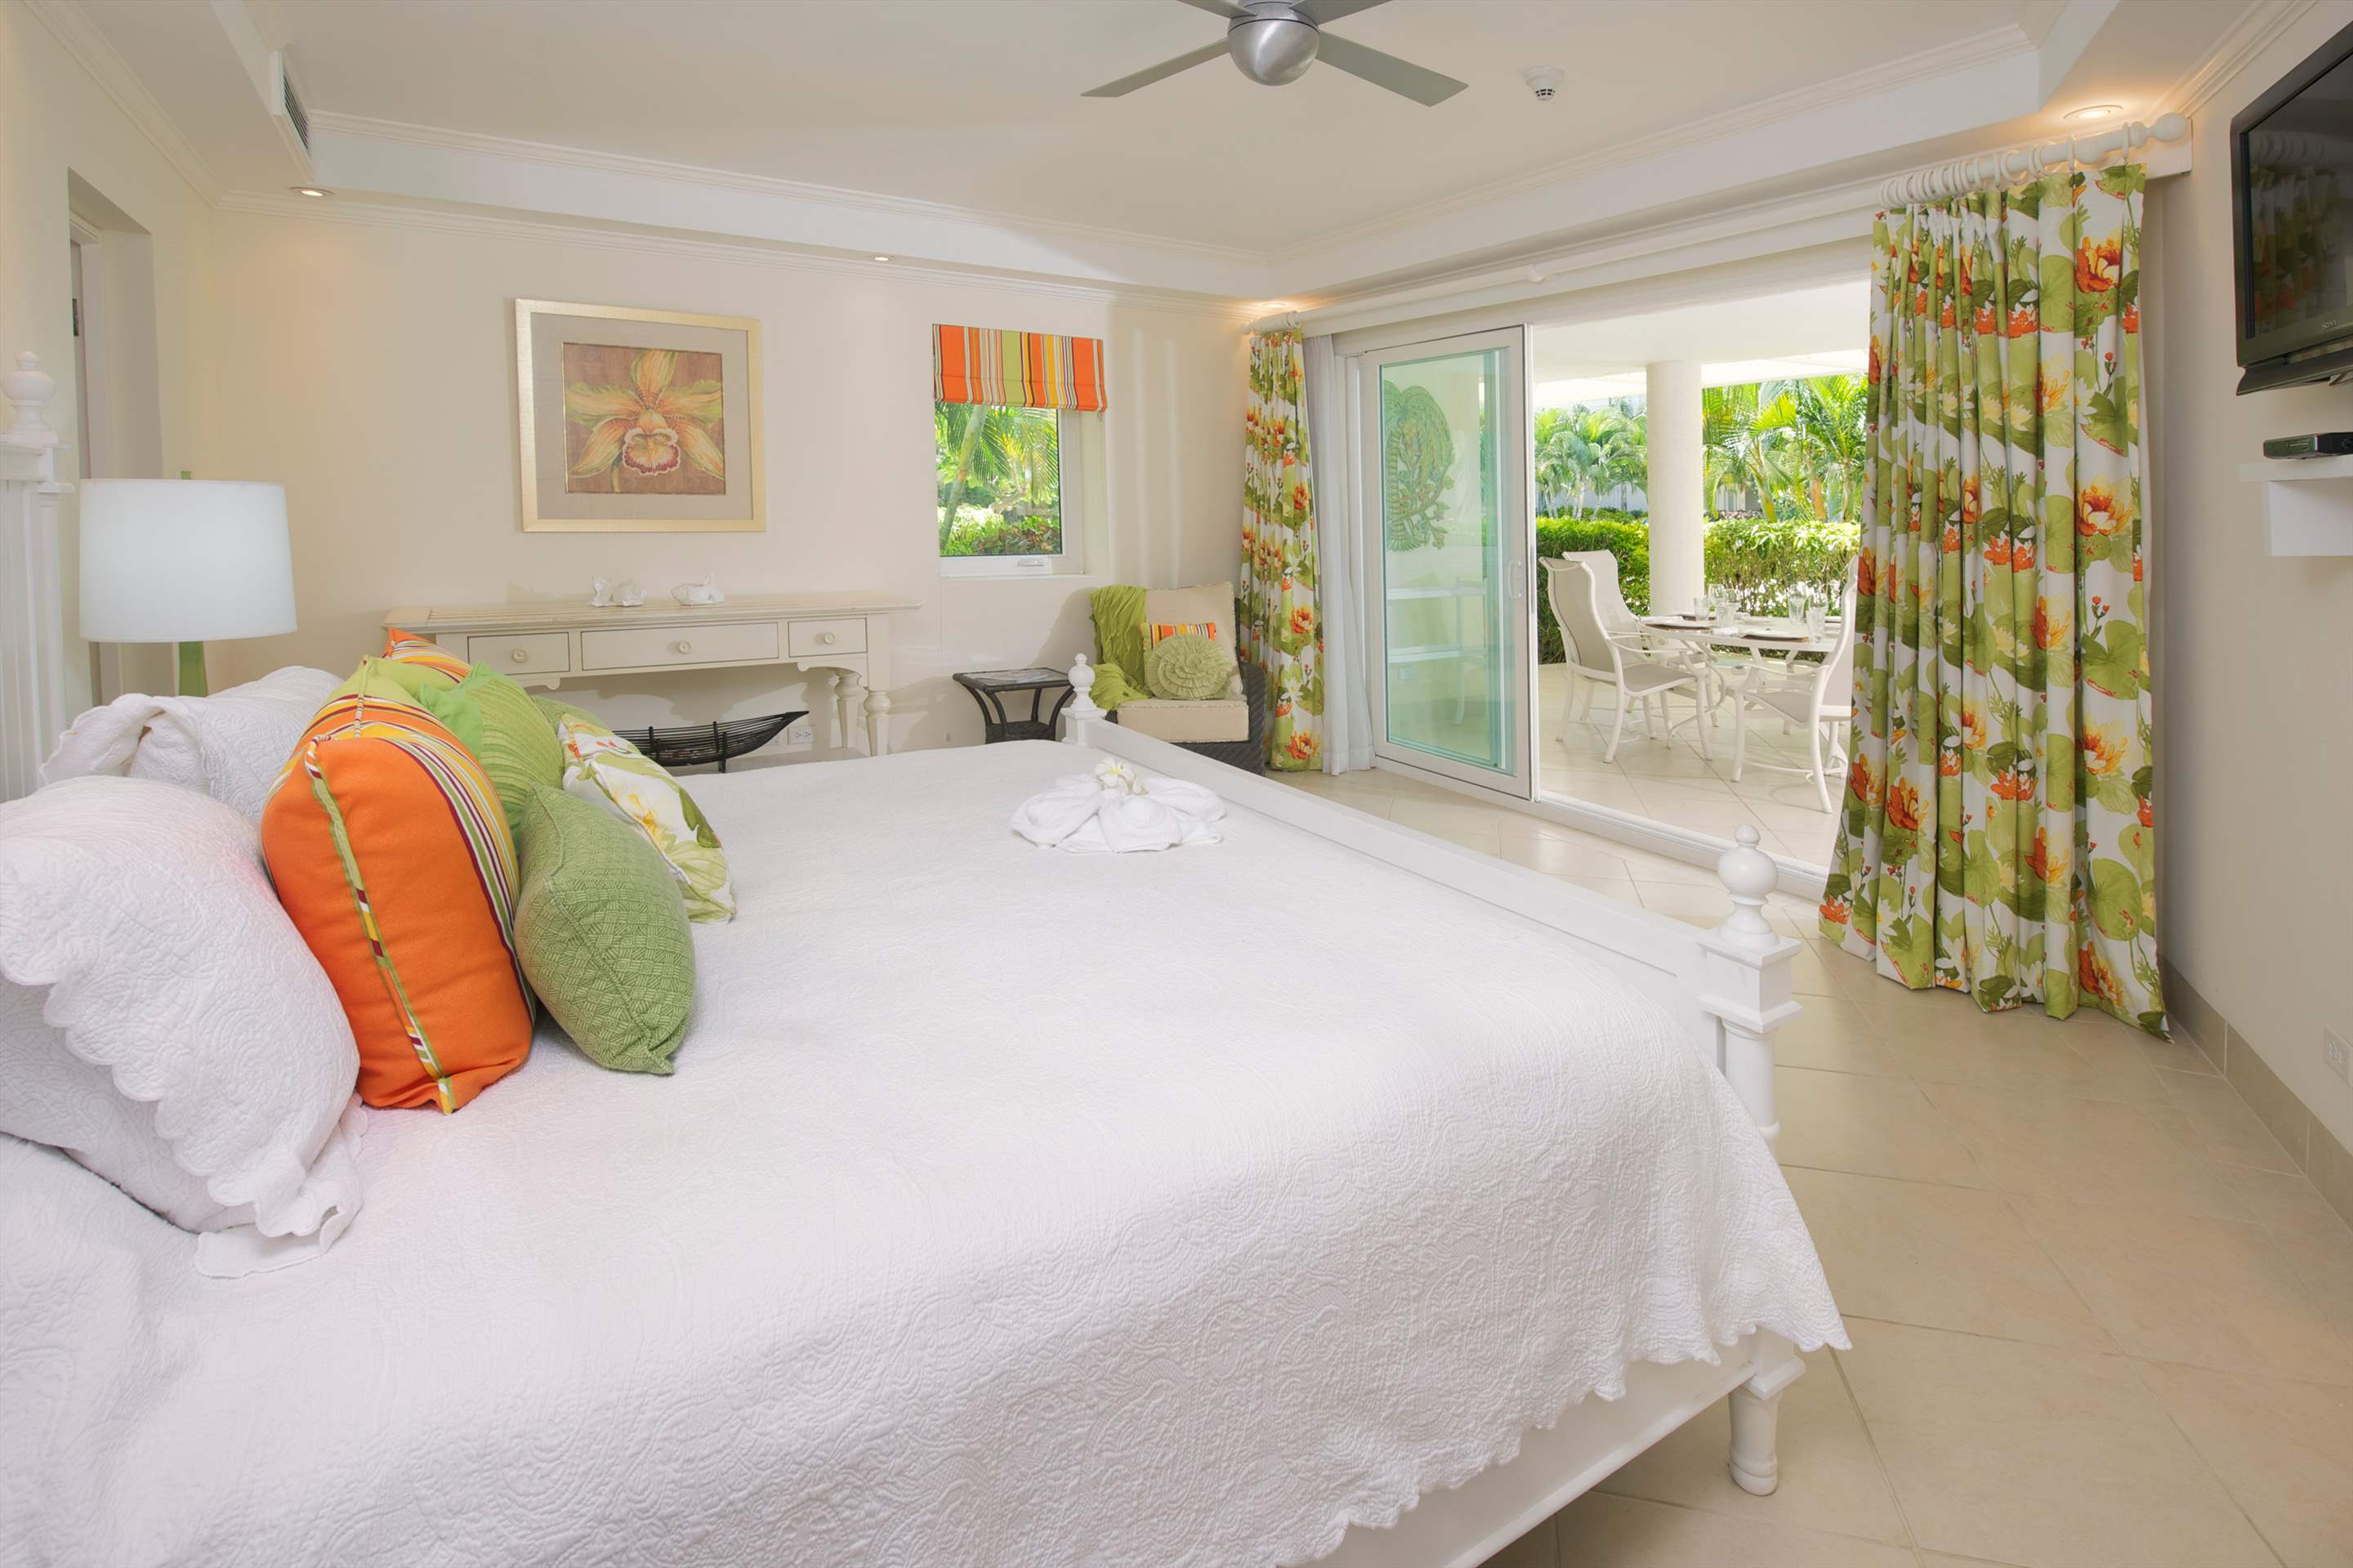 Palm Beach 110, 3 bedroom apartment in St. Lawrence Gap & South Coast, Barbados Photo #11